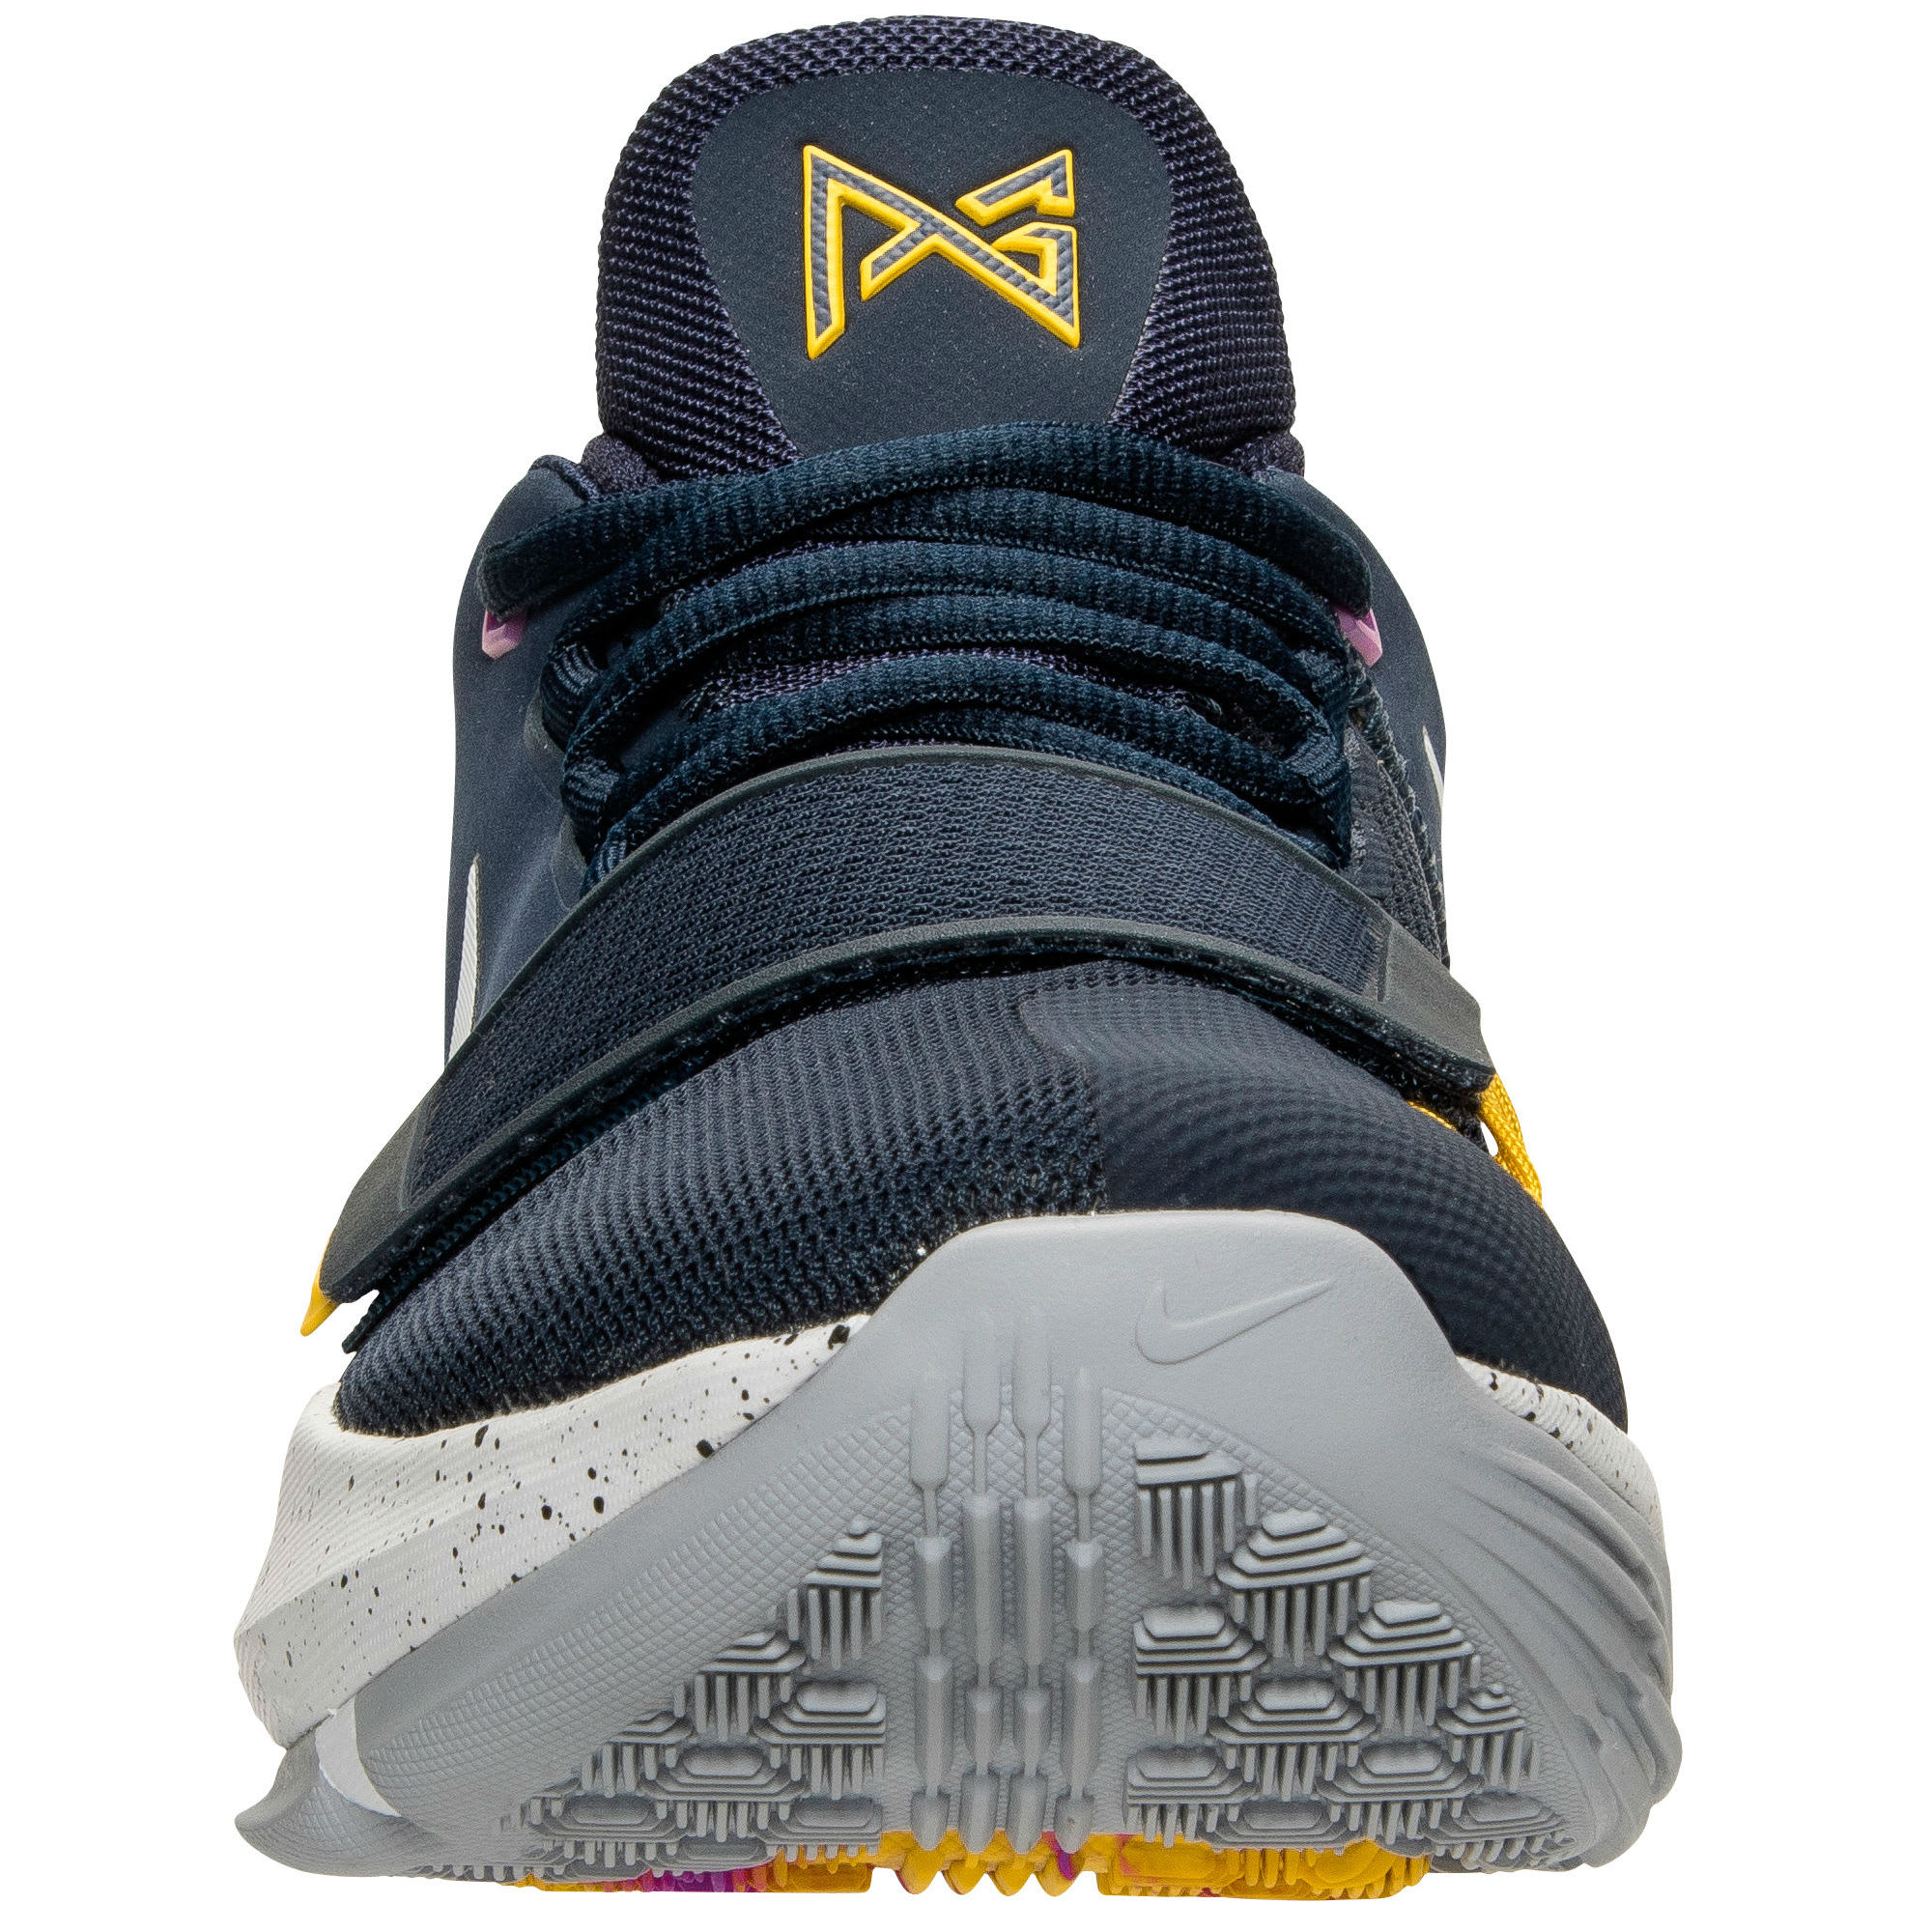 promo code 7b77b 904b3 Nike PG1 Pacers The Bait Release Date Front 878627-417